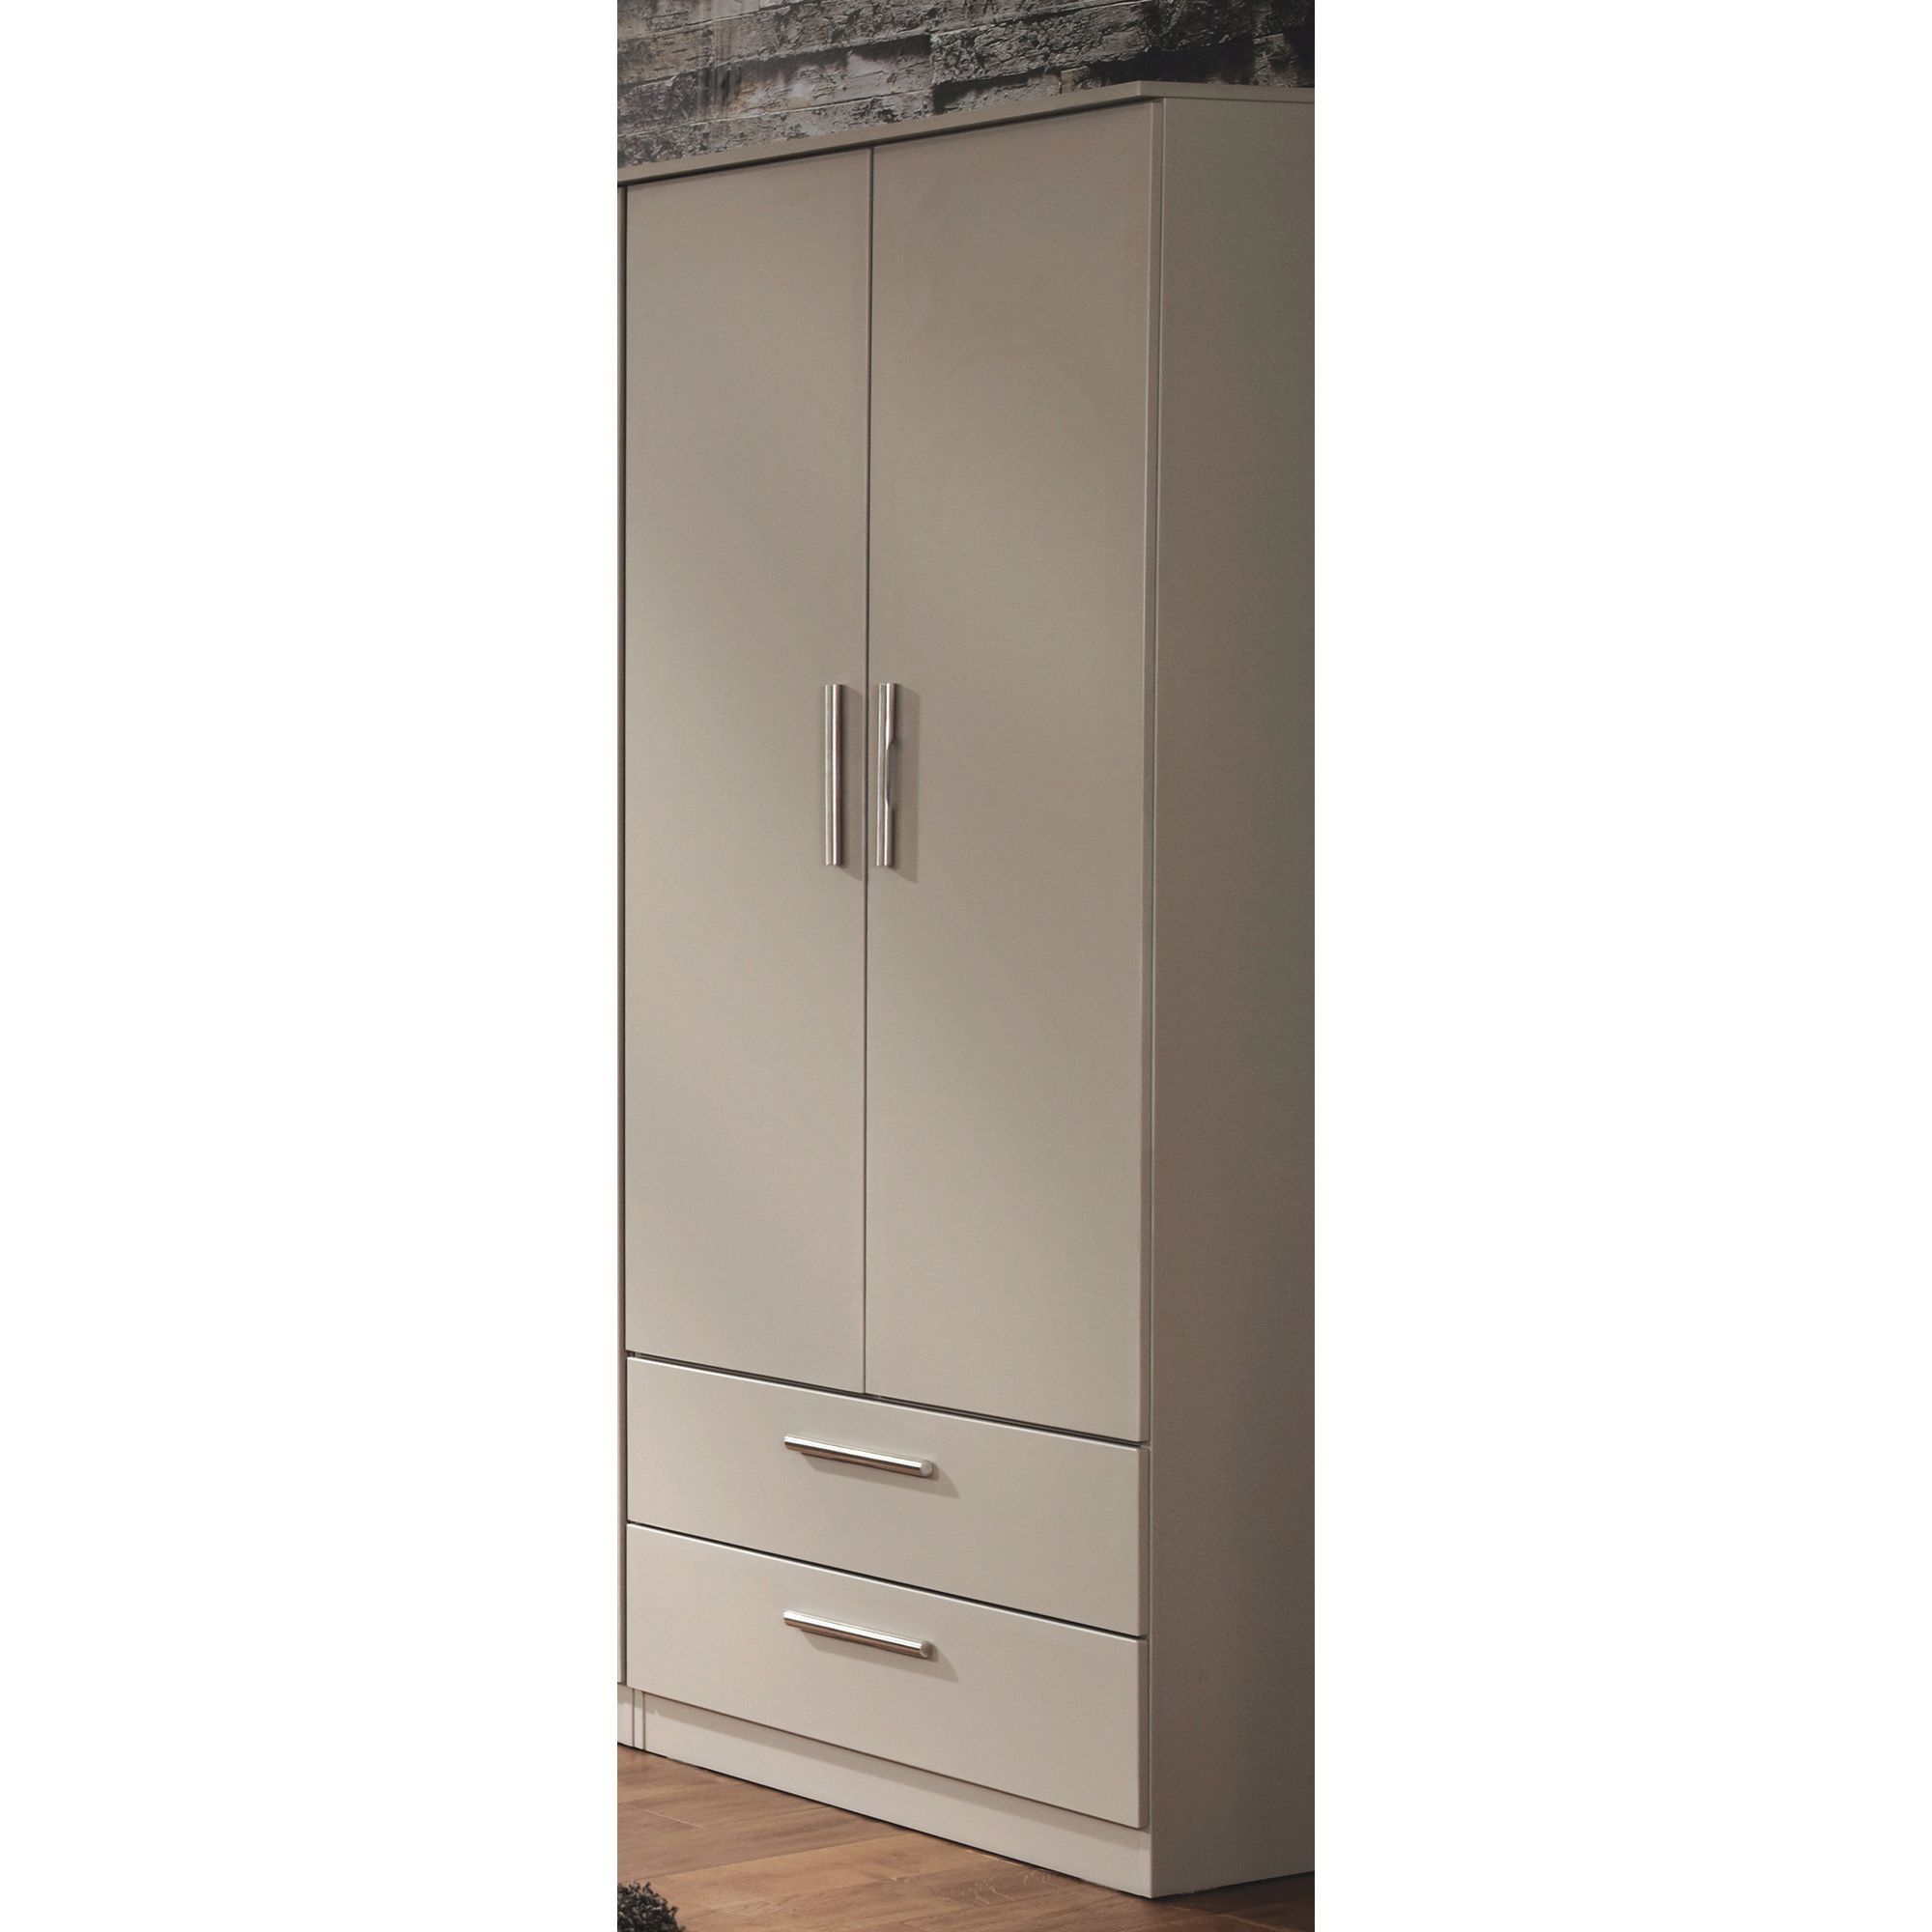 Welcome Furniture Contrast Tall 2 Drawer Wardrobe - Mushroom at Tesco Direct